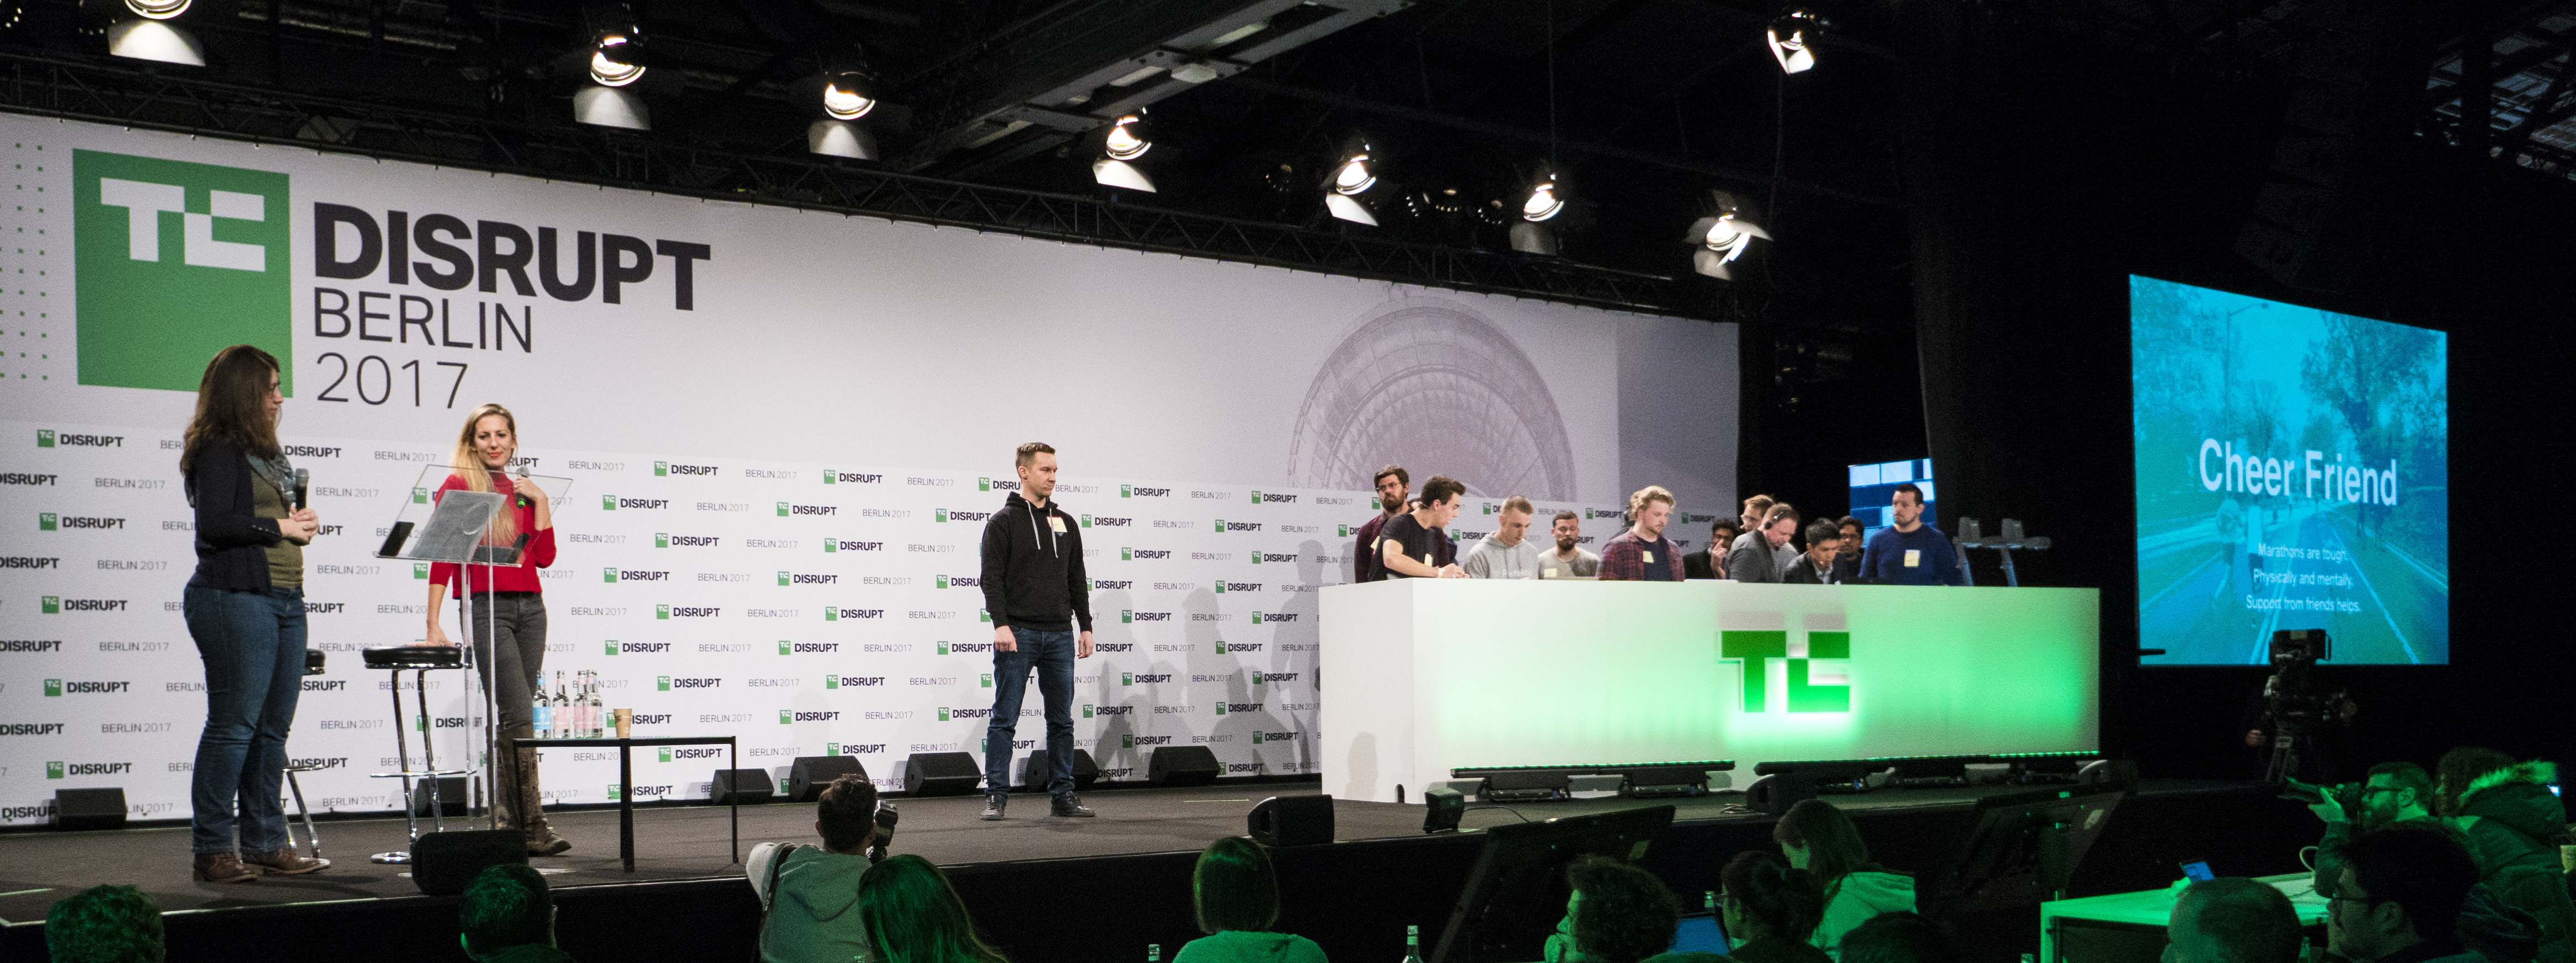 Tuomas on TechCrunch stage